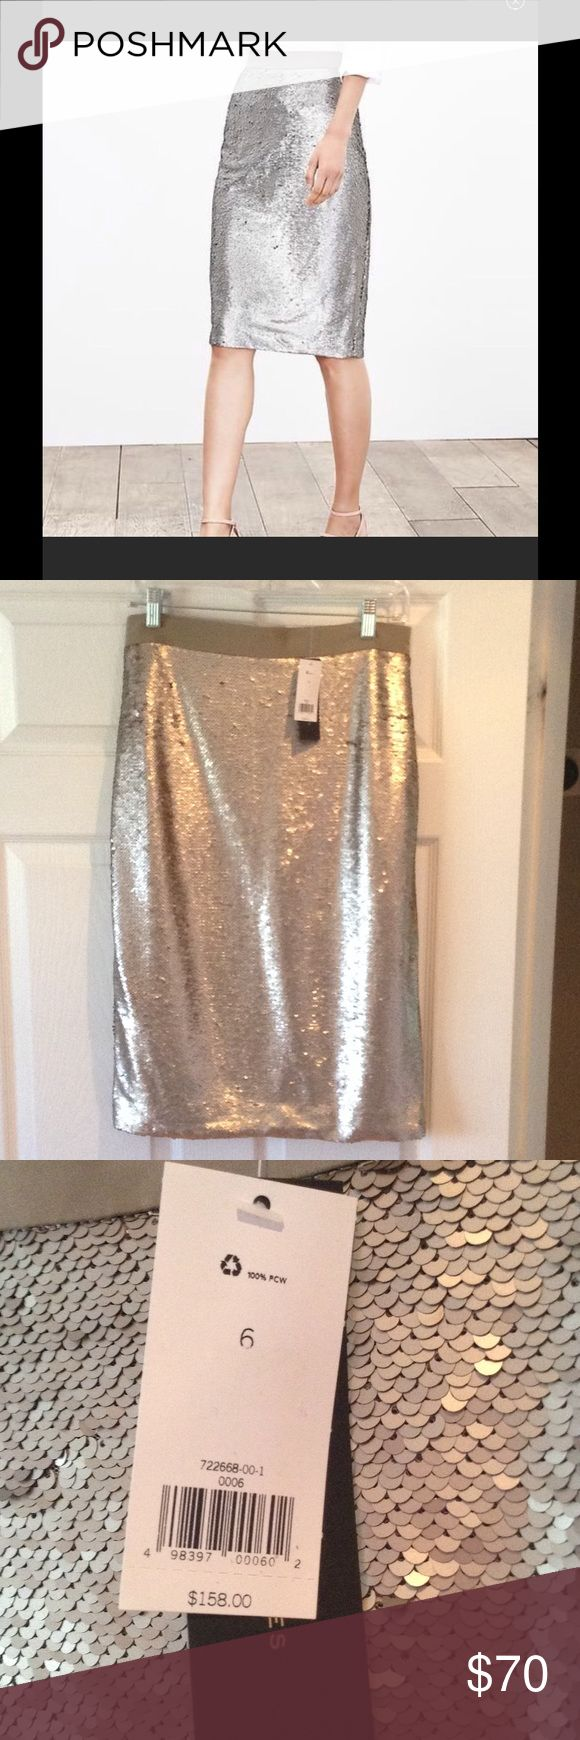 Banana Republic Pencil skirt sequin Beautiful silver pencil skirt. Size 6. Nwt! Great for a party or just because. Banana Republic Skirts Pencil